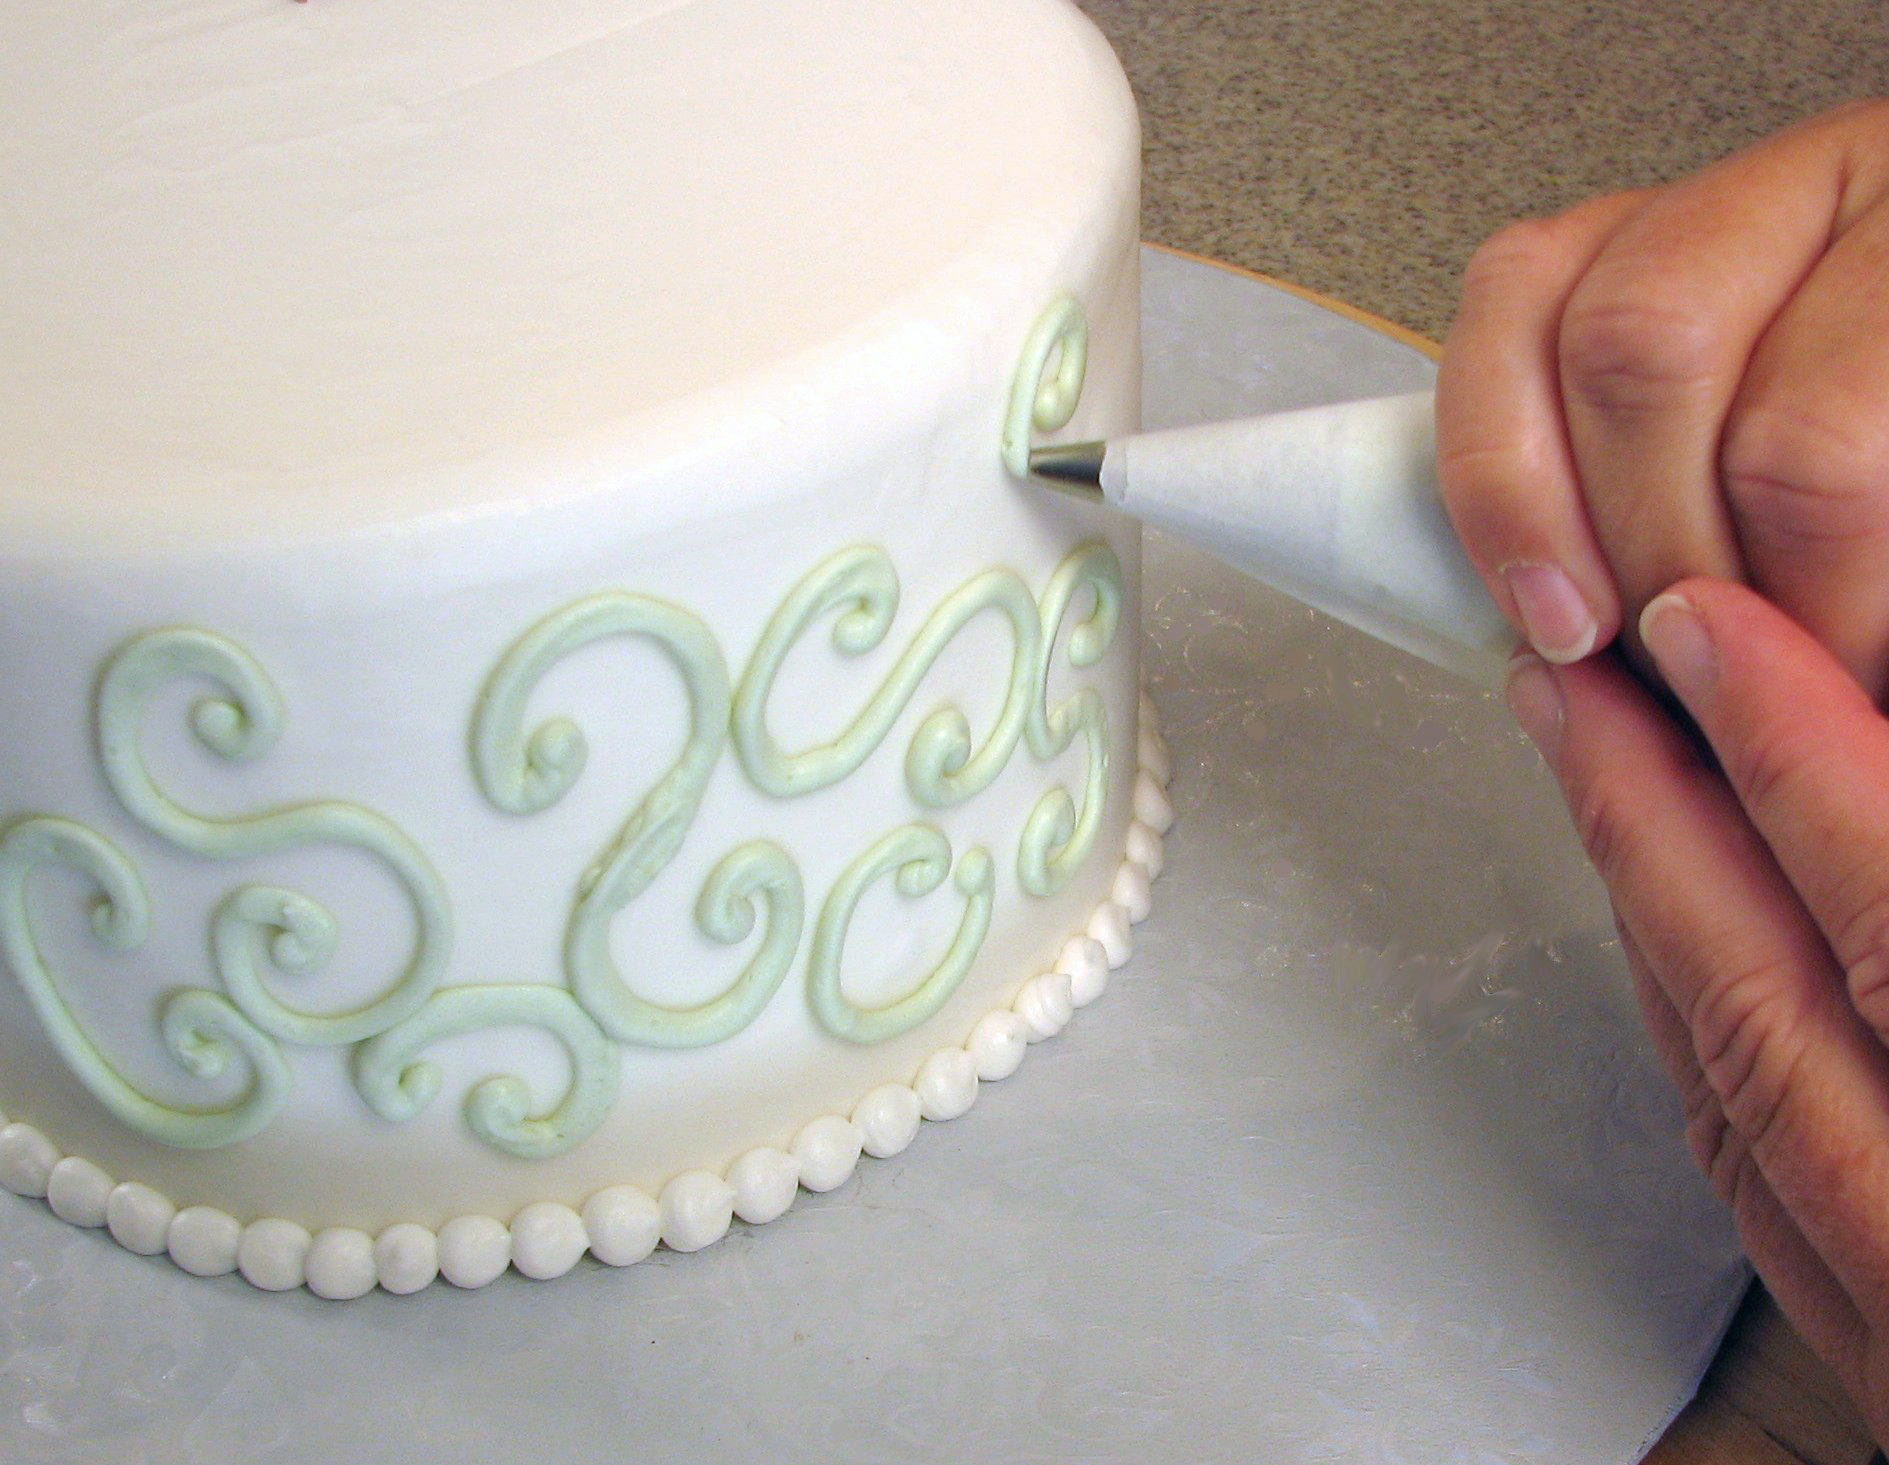 Cake Decorating Latest Techniques : Cake decorating - Wikipedia